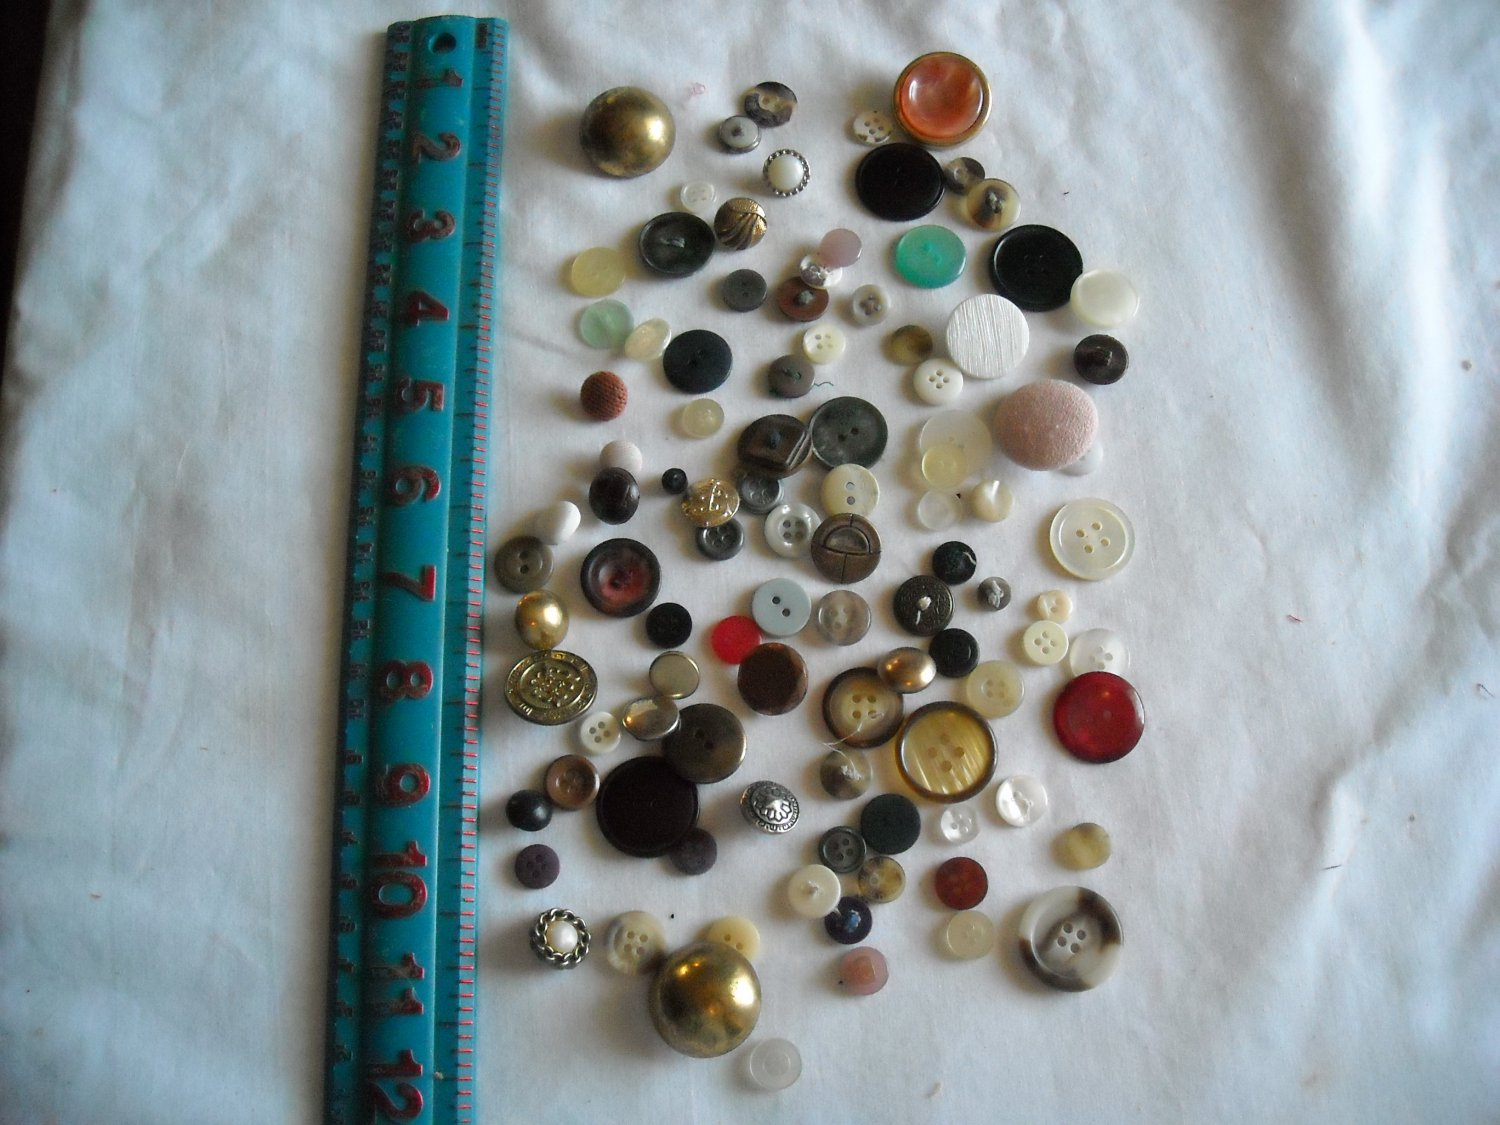 Lot of 100 Assorted Buttons Assorted Sizes and Styles Great for Crafts (WTNM27)